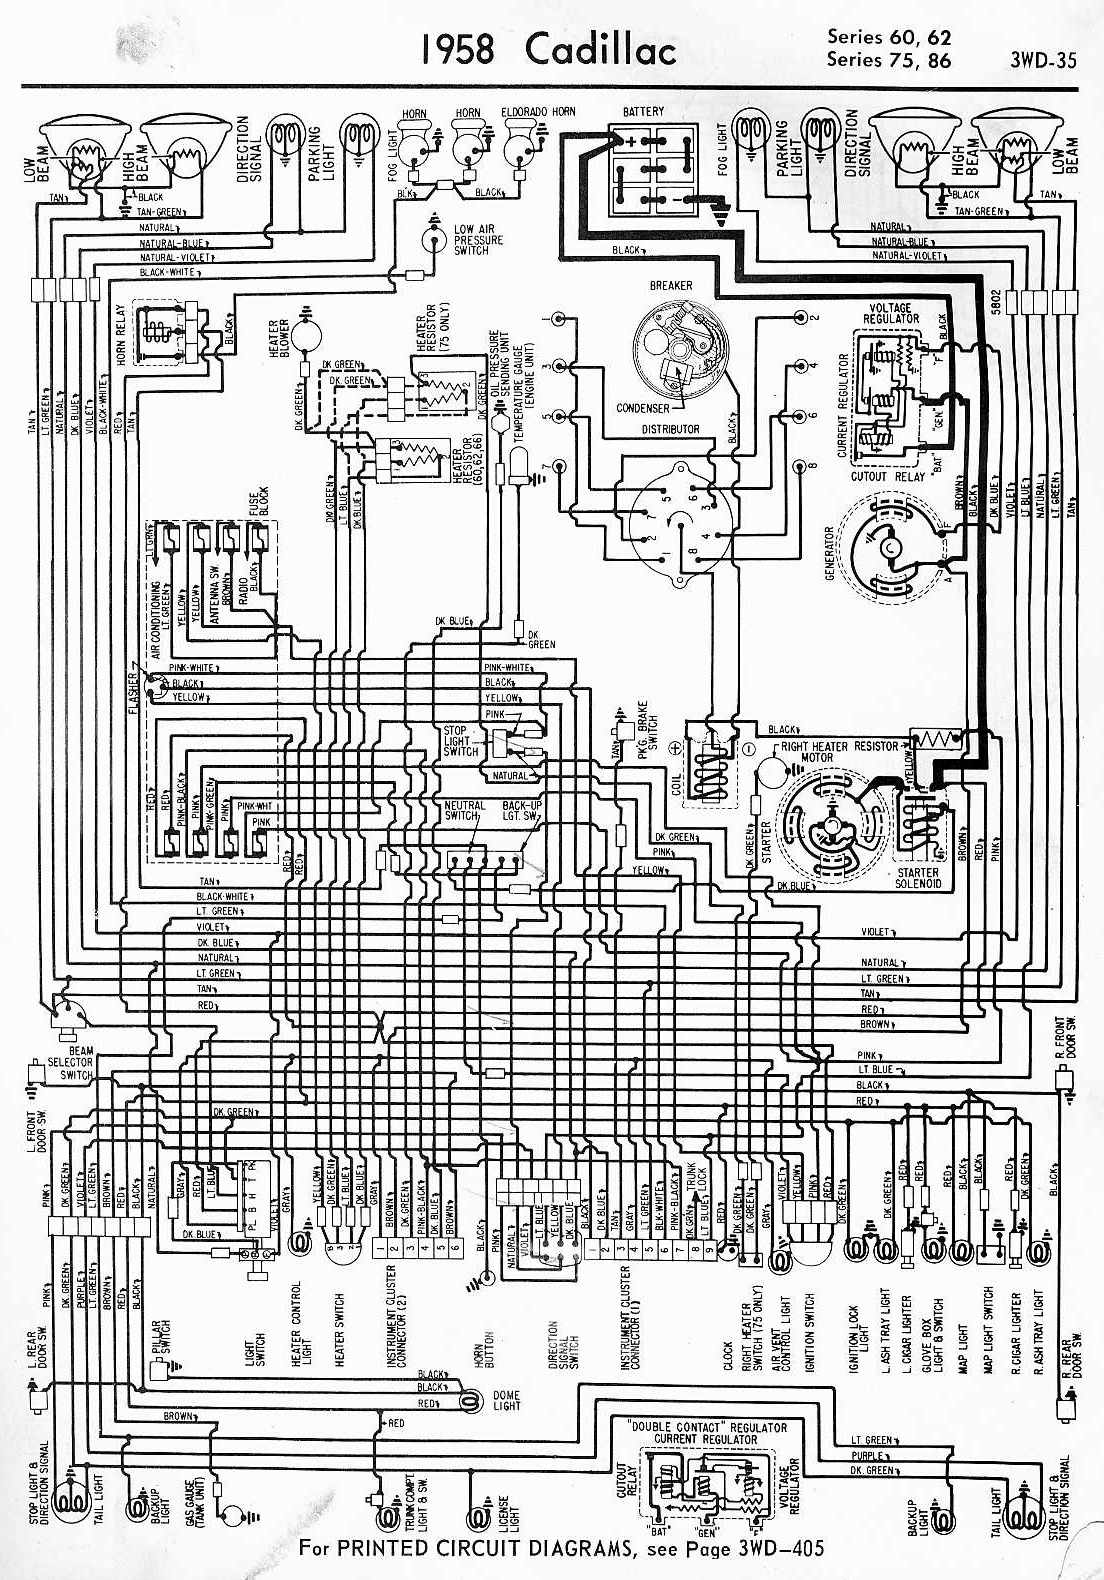 wiring diagram for 1958 cadillac 60 62 75 86 series?t\=1502556603?quality\=80\&strip\=all 1959 cadillac wiring harness 1959 cadillac air conditioning, 1959 1959 cadillac 390 engine wiring diagram at mifinder.co